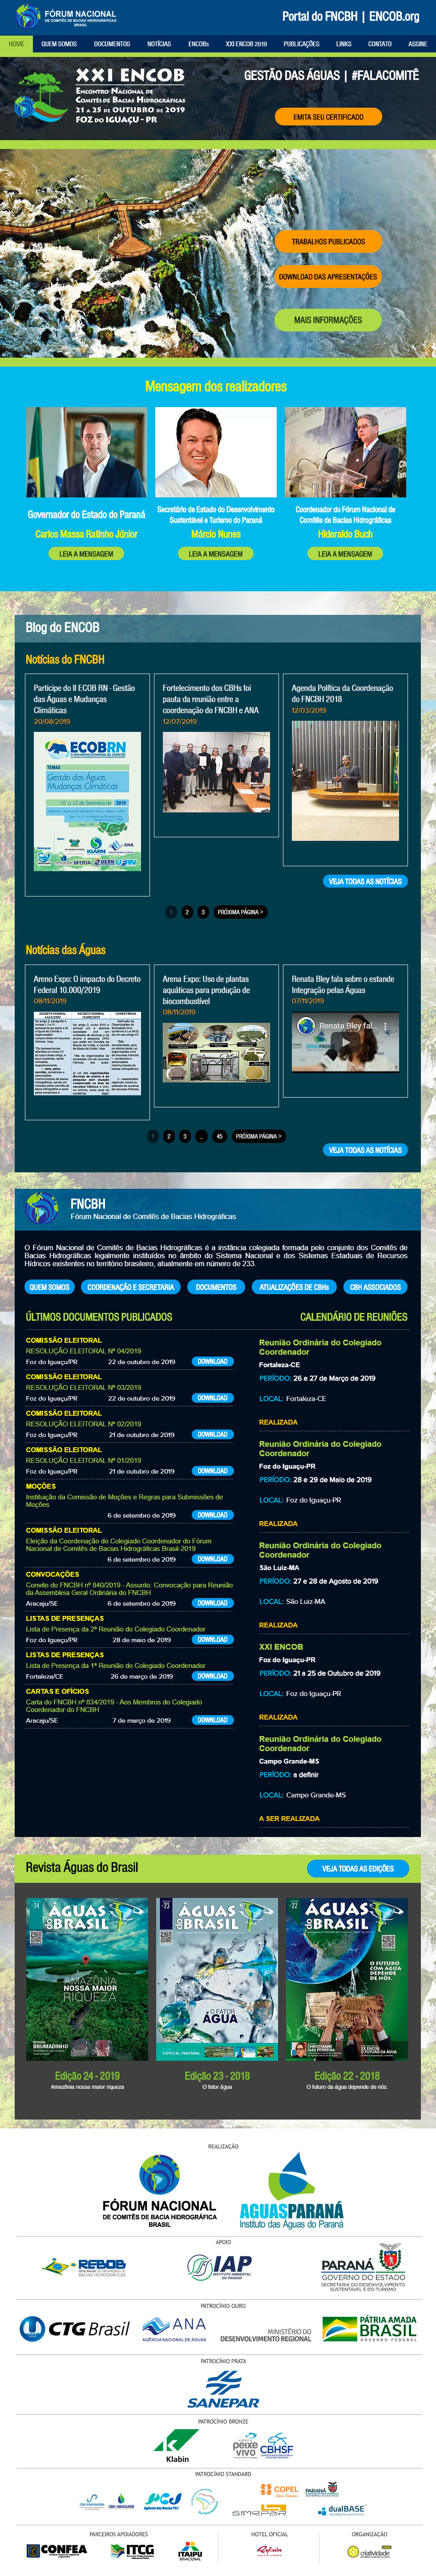 SITE DO EVENTO